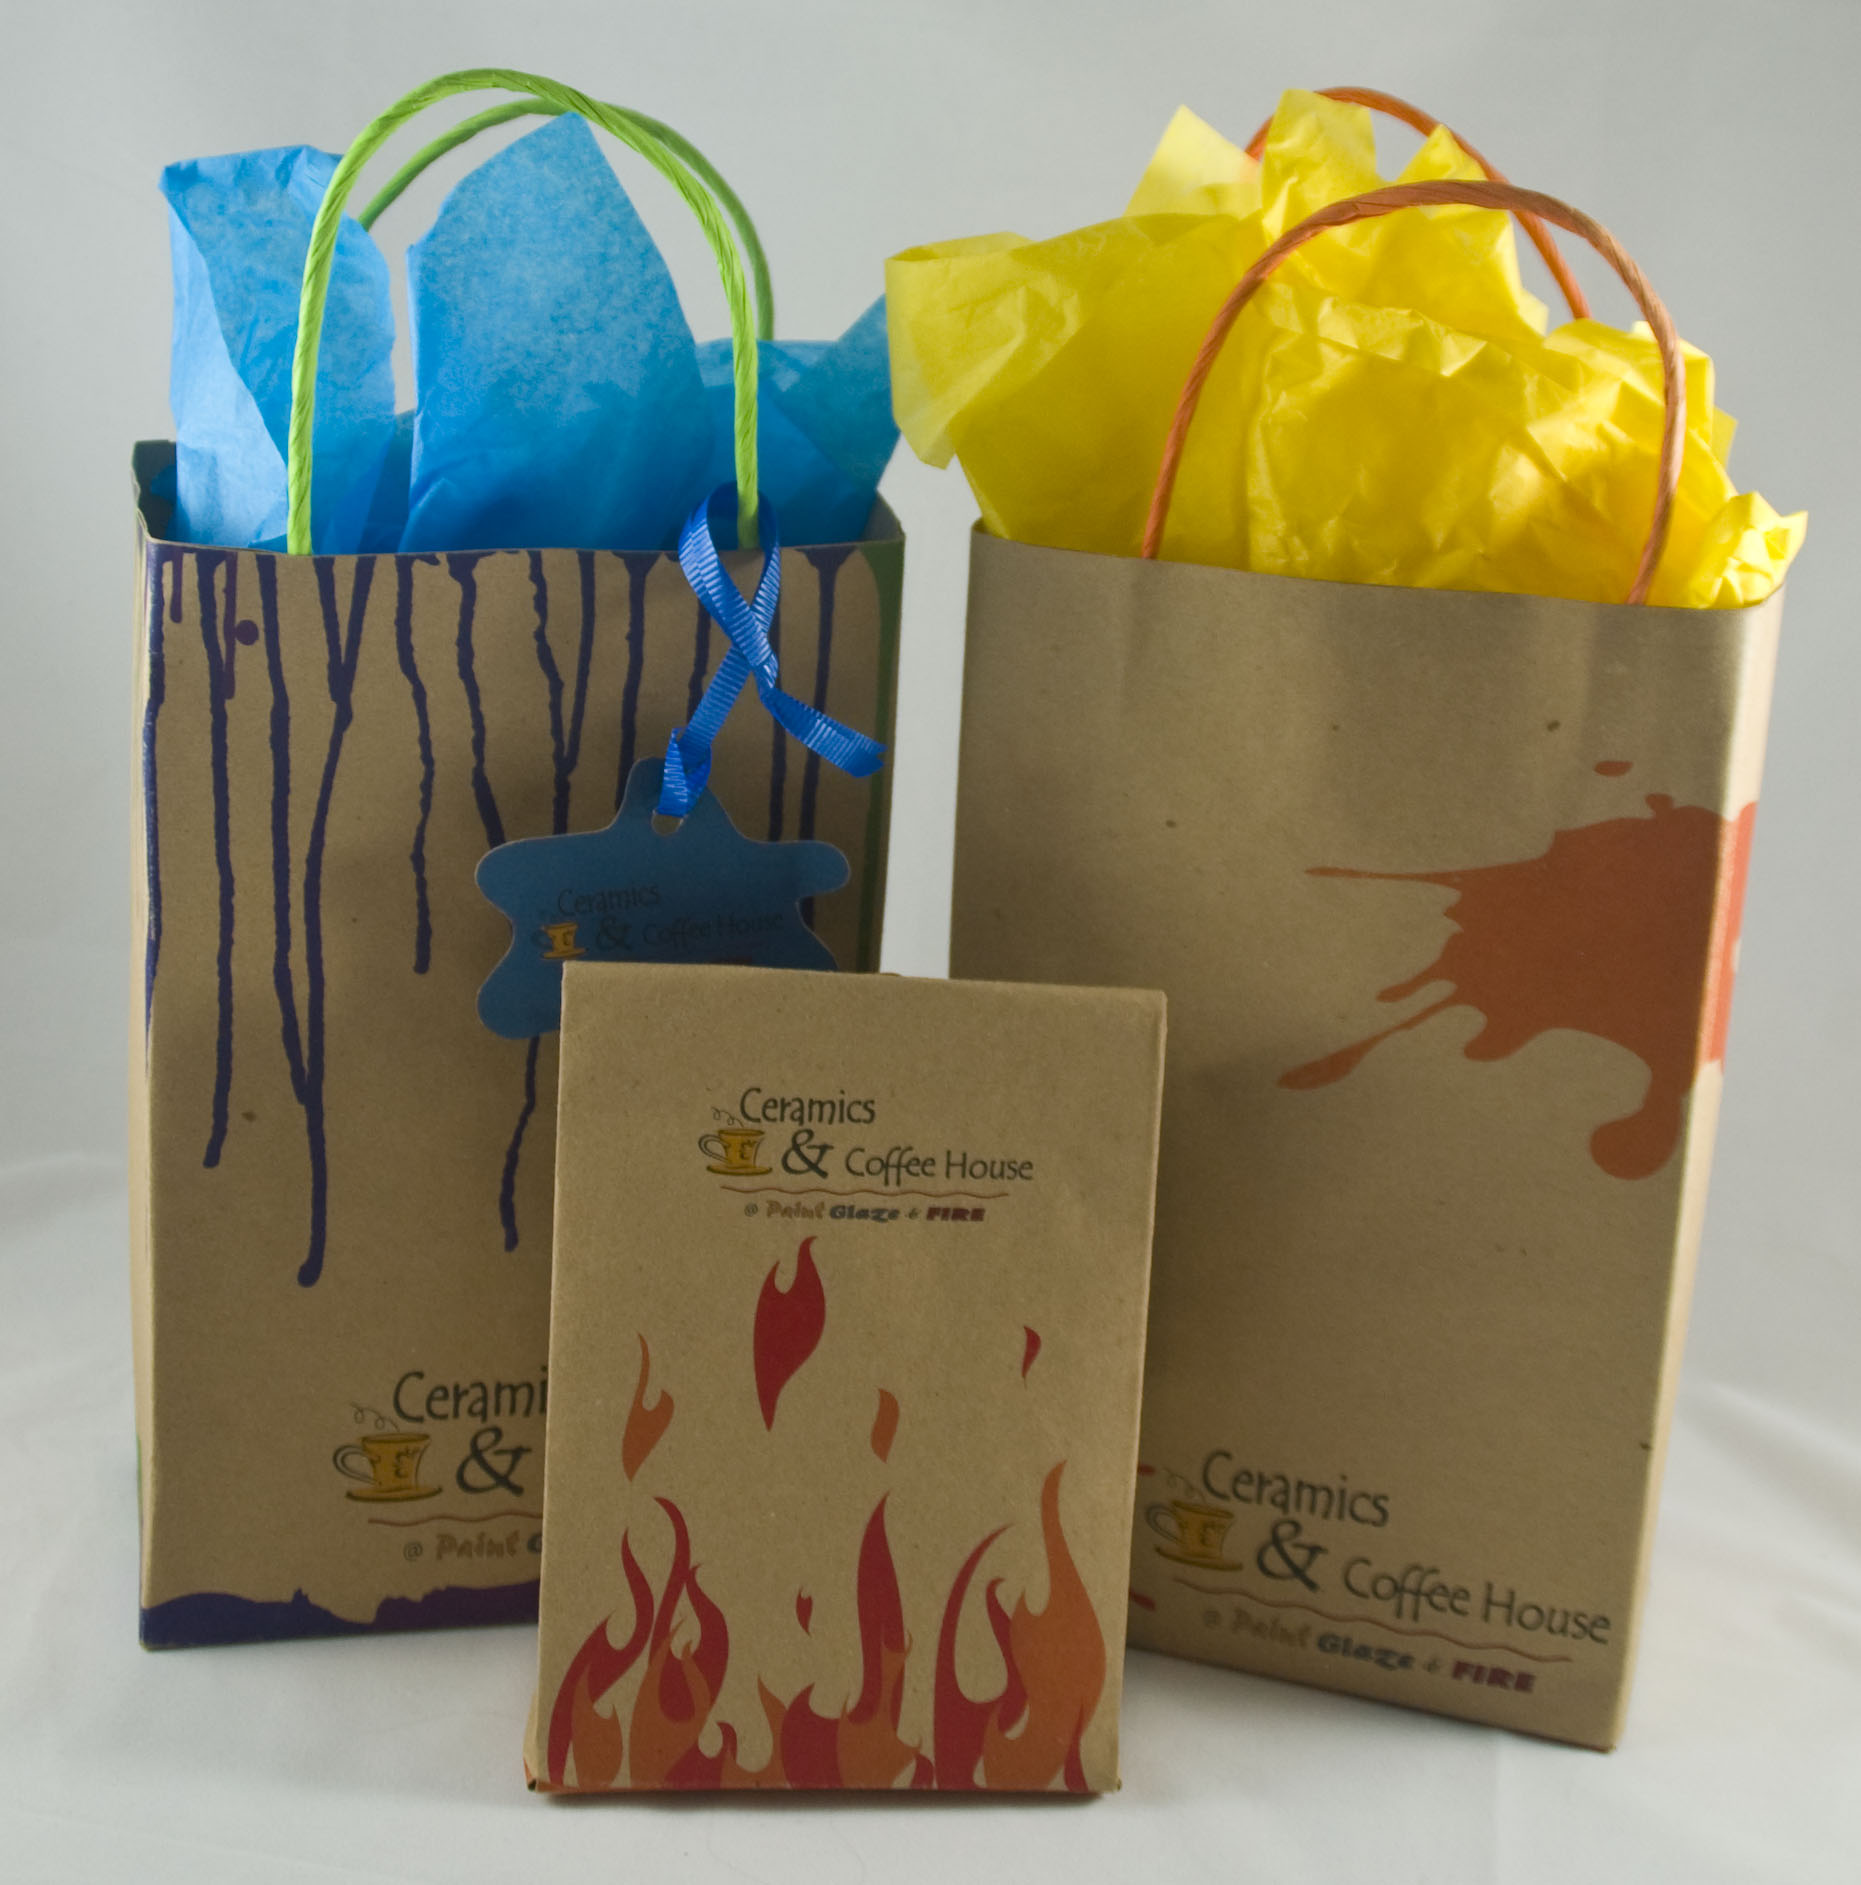 Paint Glaze and Fire - Packaging design